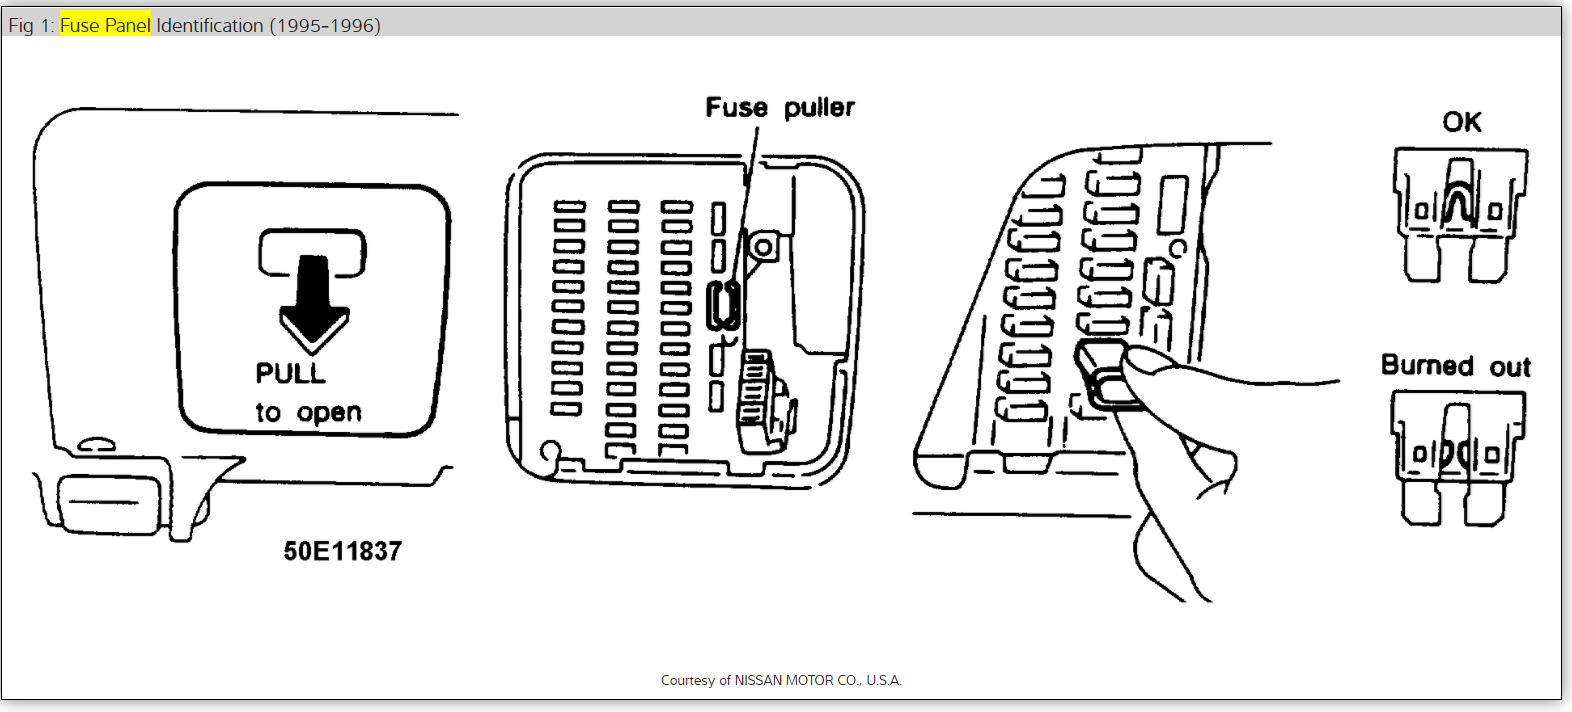 1995 Nissan Maxima Fuse Box Wiring Diagram Fur Alternator Fur Alternator Lasuiteclub It